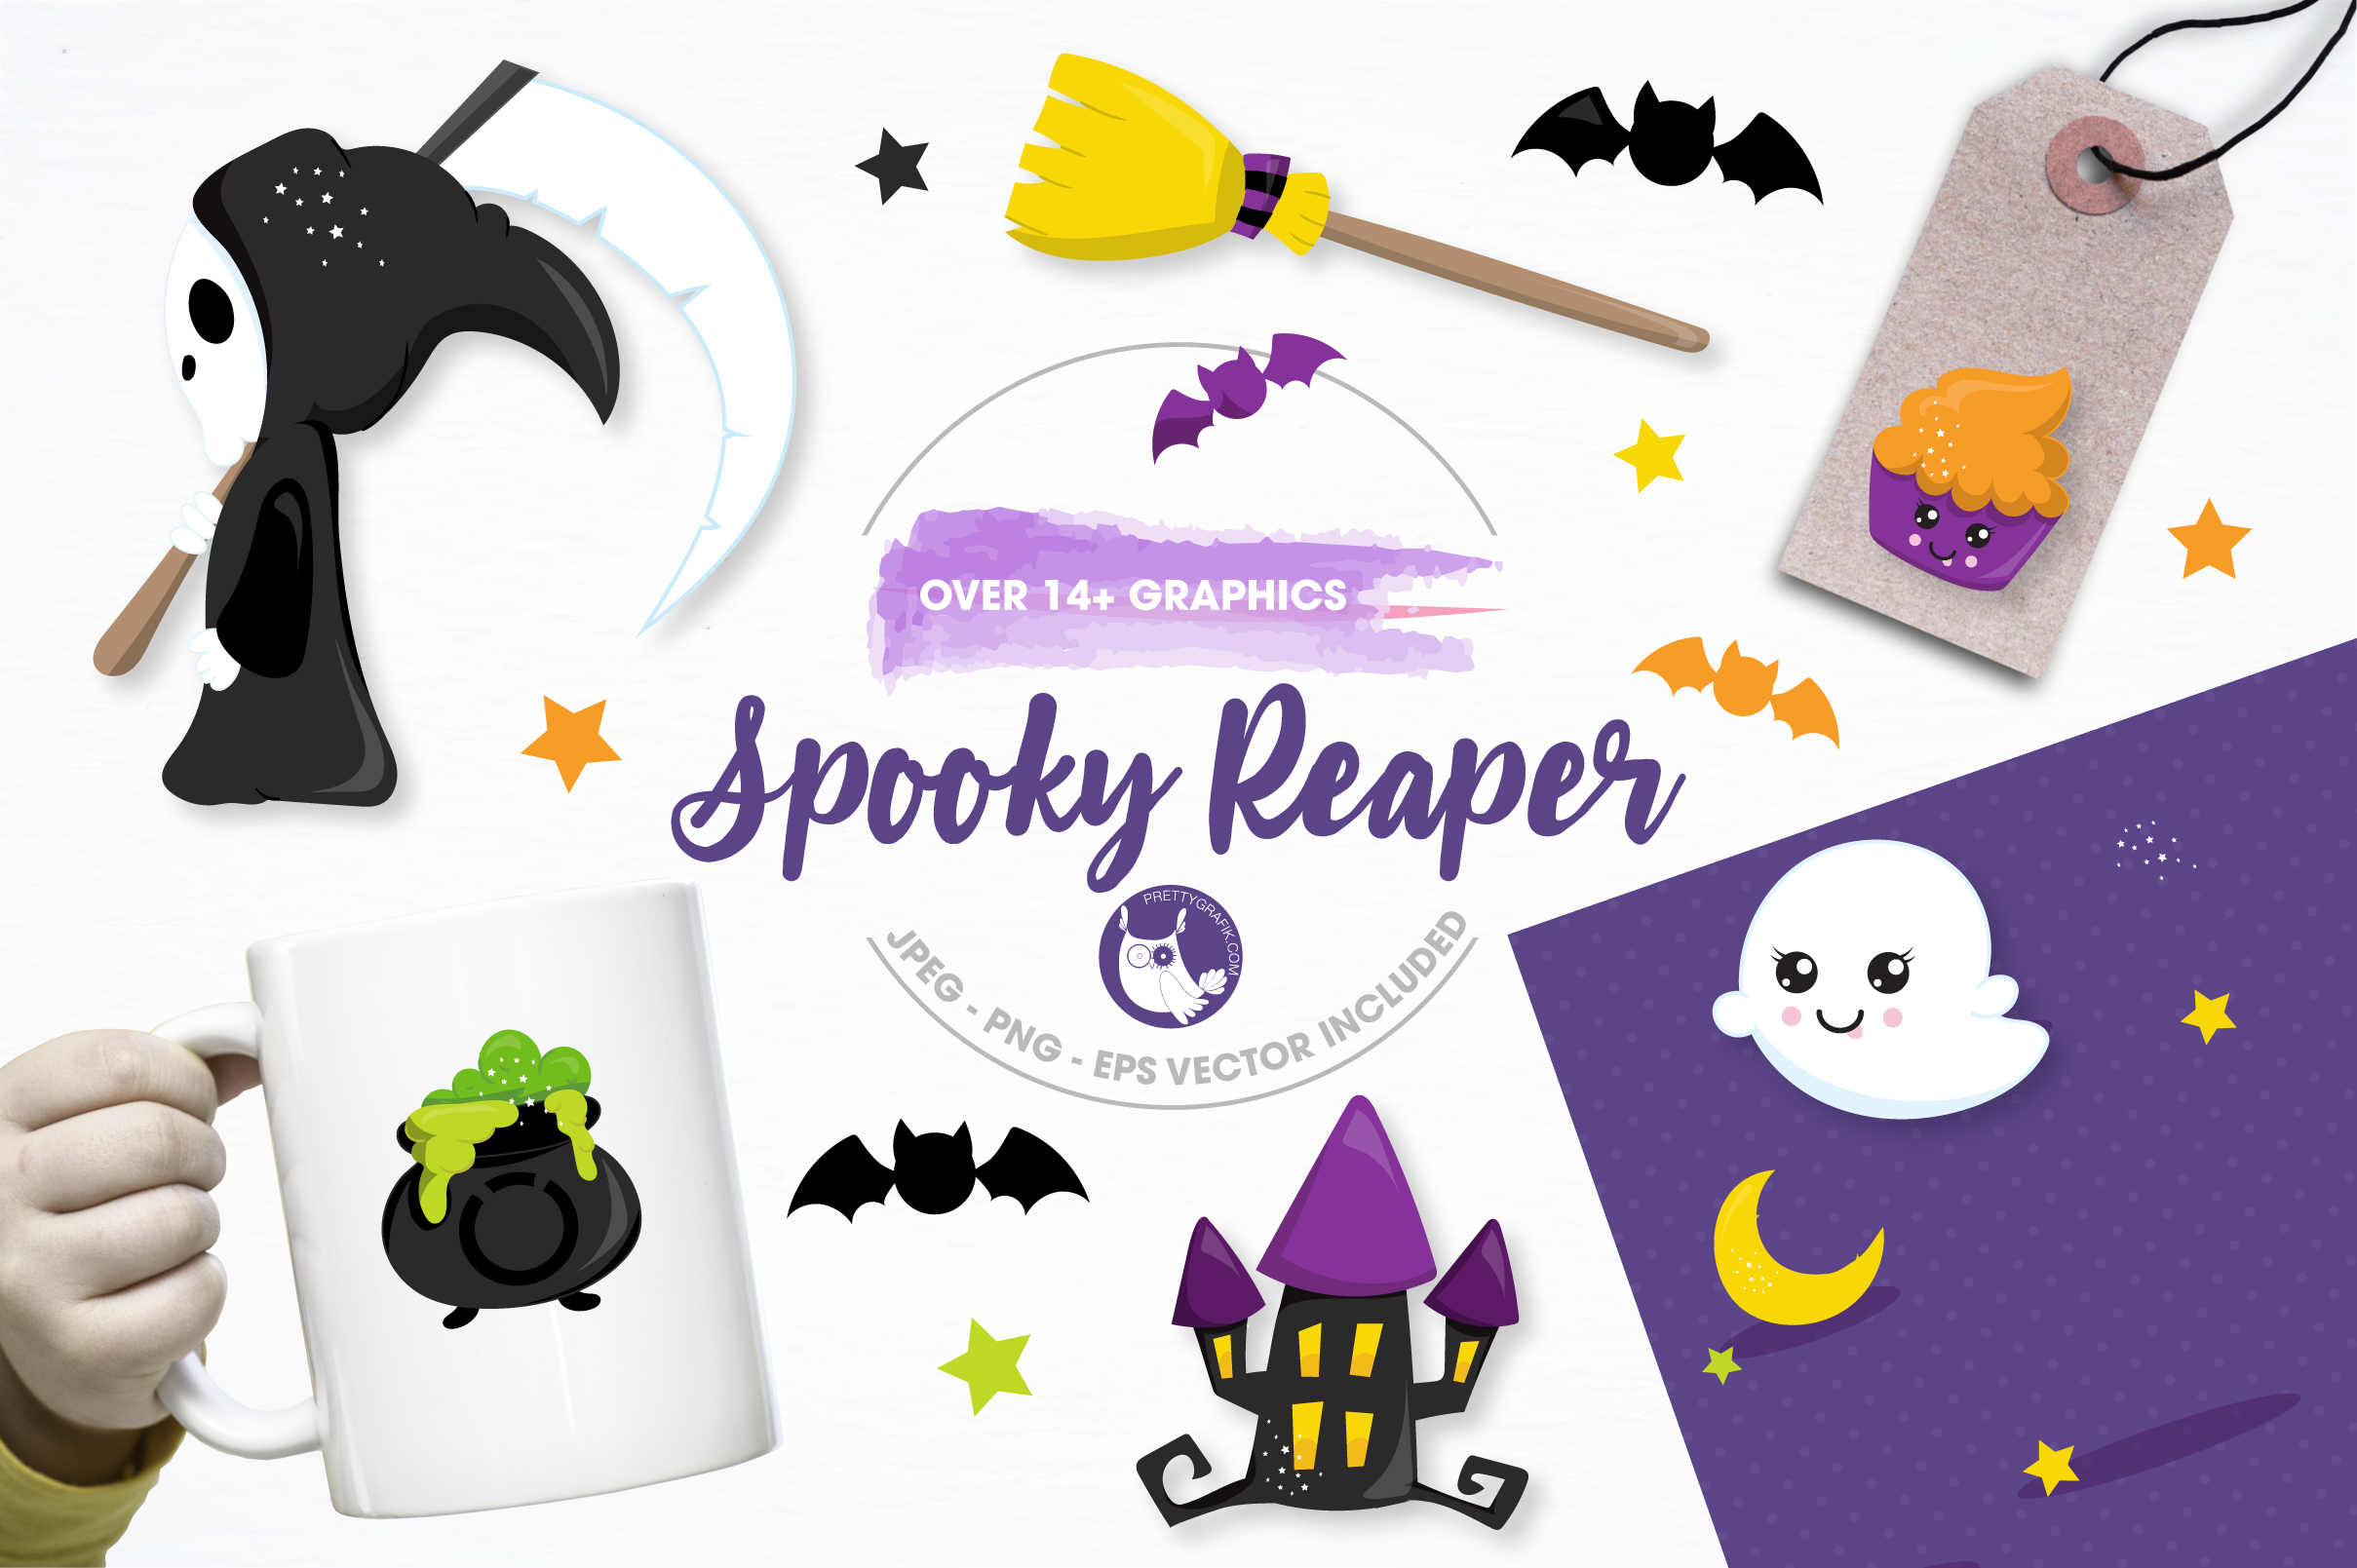 spooky reaper graphics and illustrations example image 1